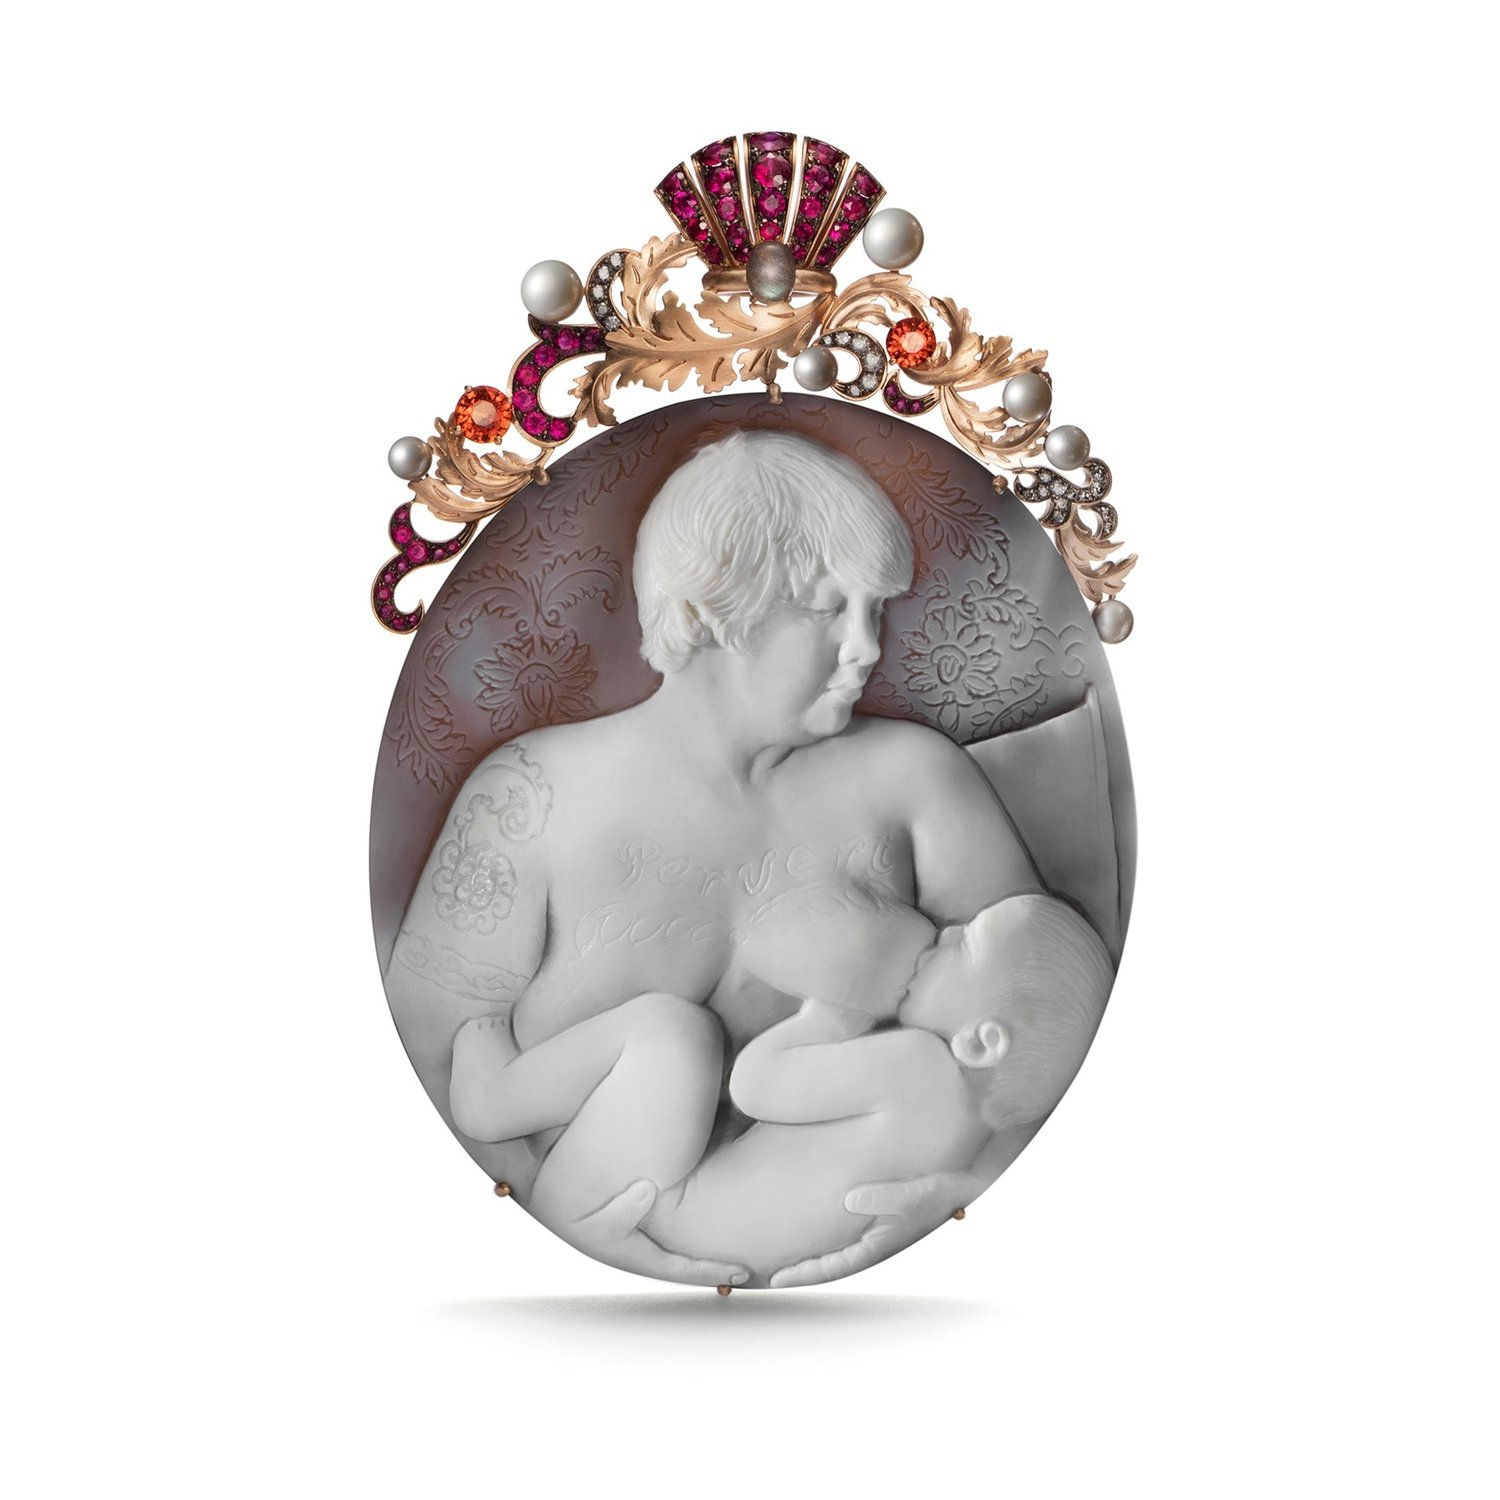 Self-Portrait Nursing  pendant by Catherine Opie for the new LIZWORK Cameo line. Photo courtesy of LIZWORKS.